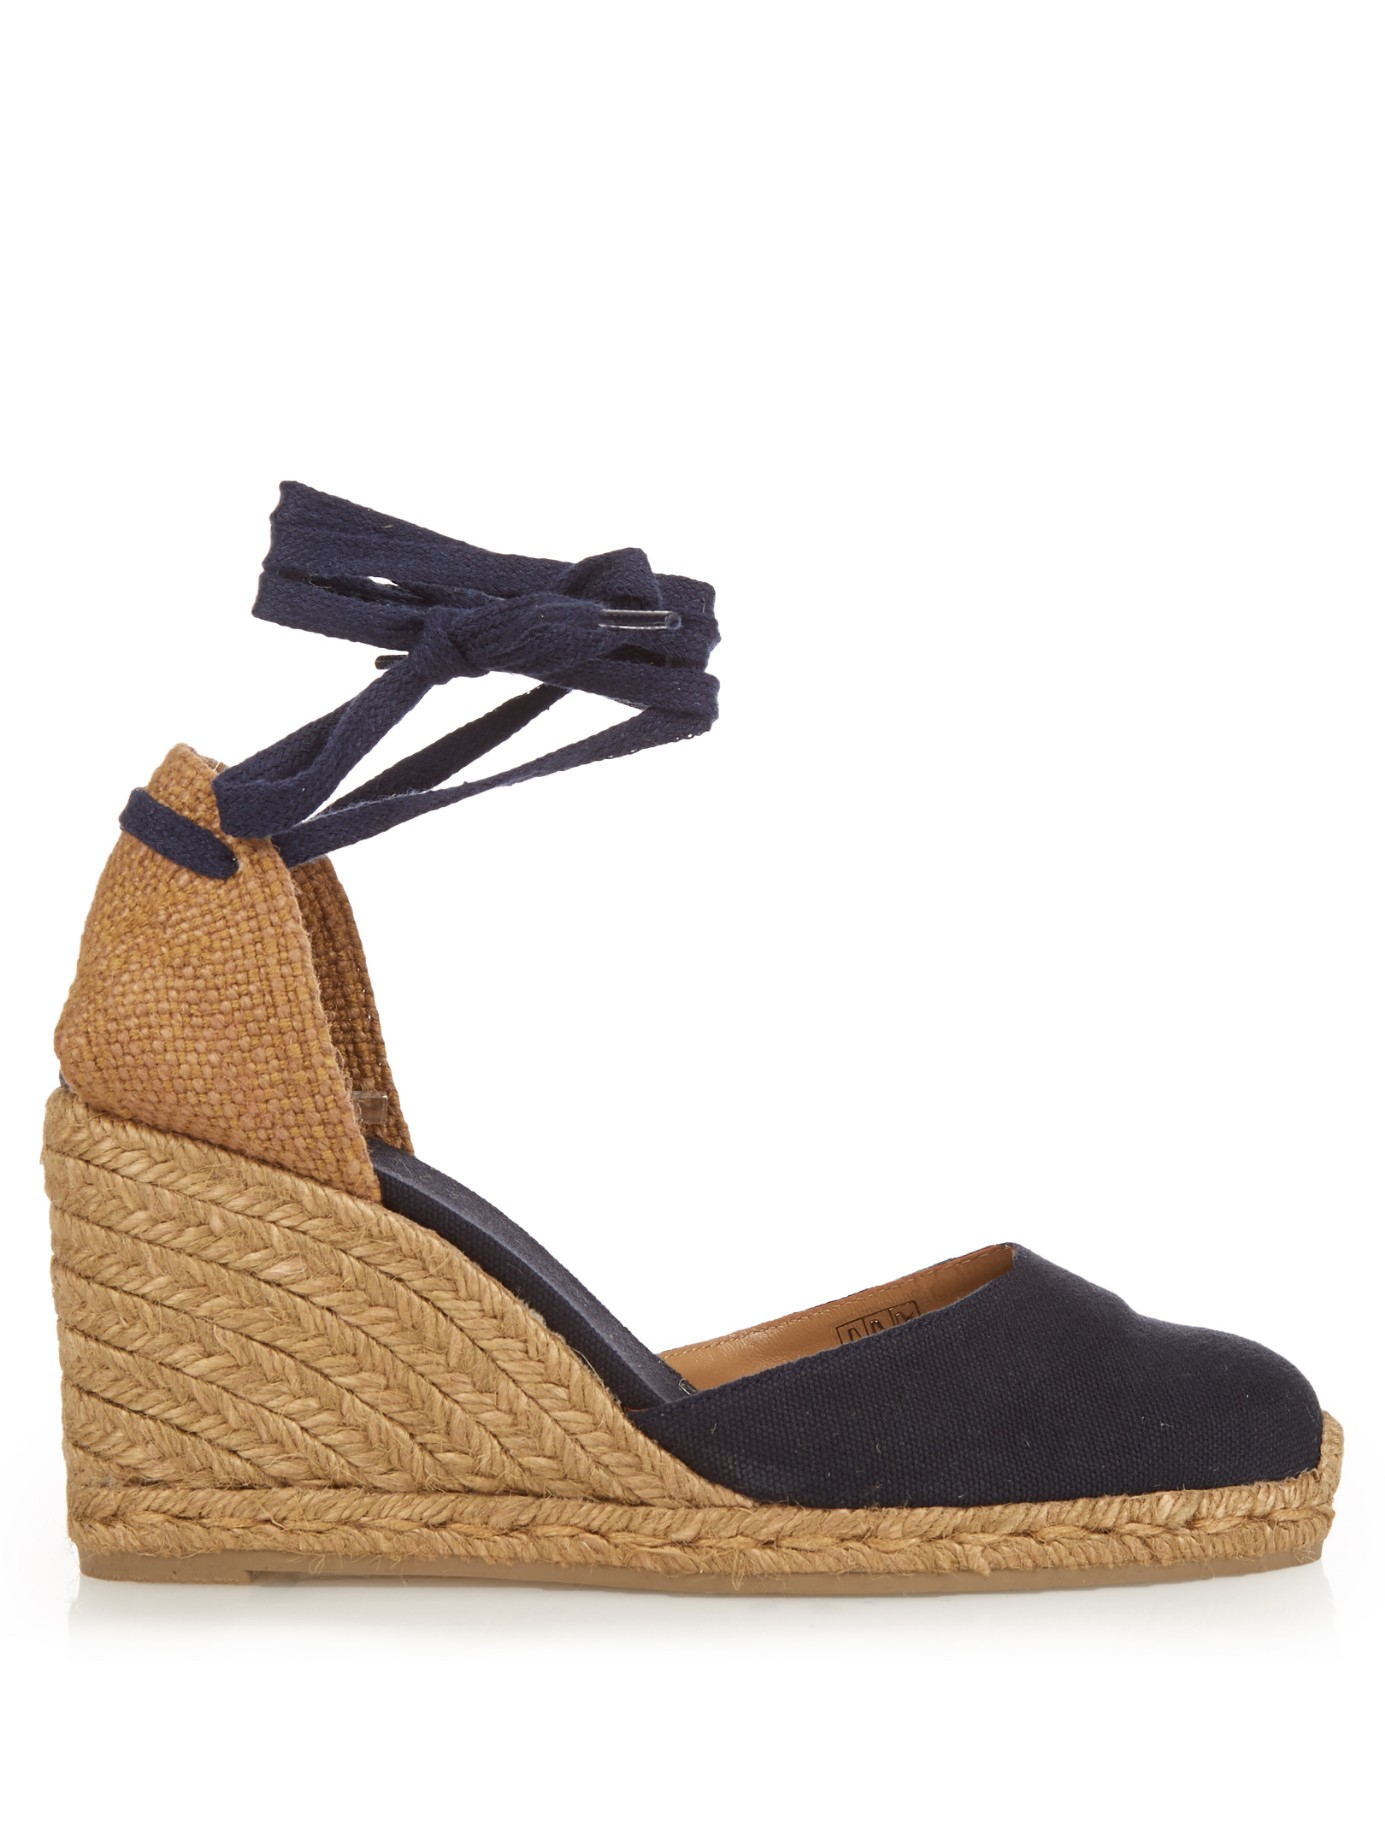 1bf719f17a Castaner Carina Espadrille Wedges In Blue Lyst. Navy Blue Espadrille Wedges